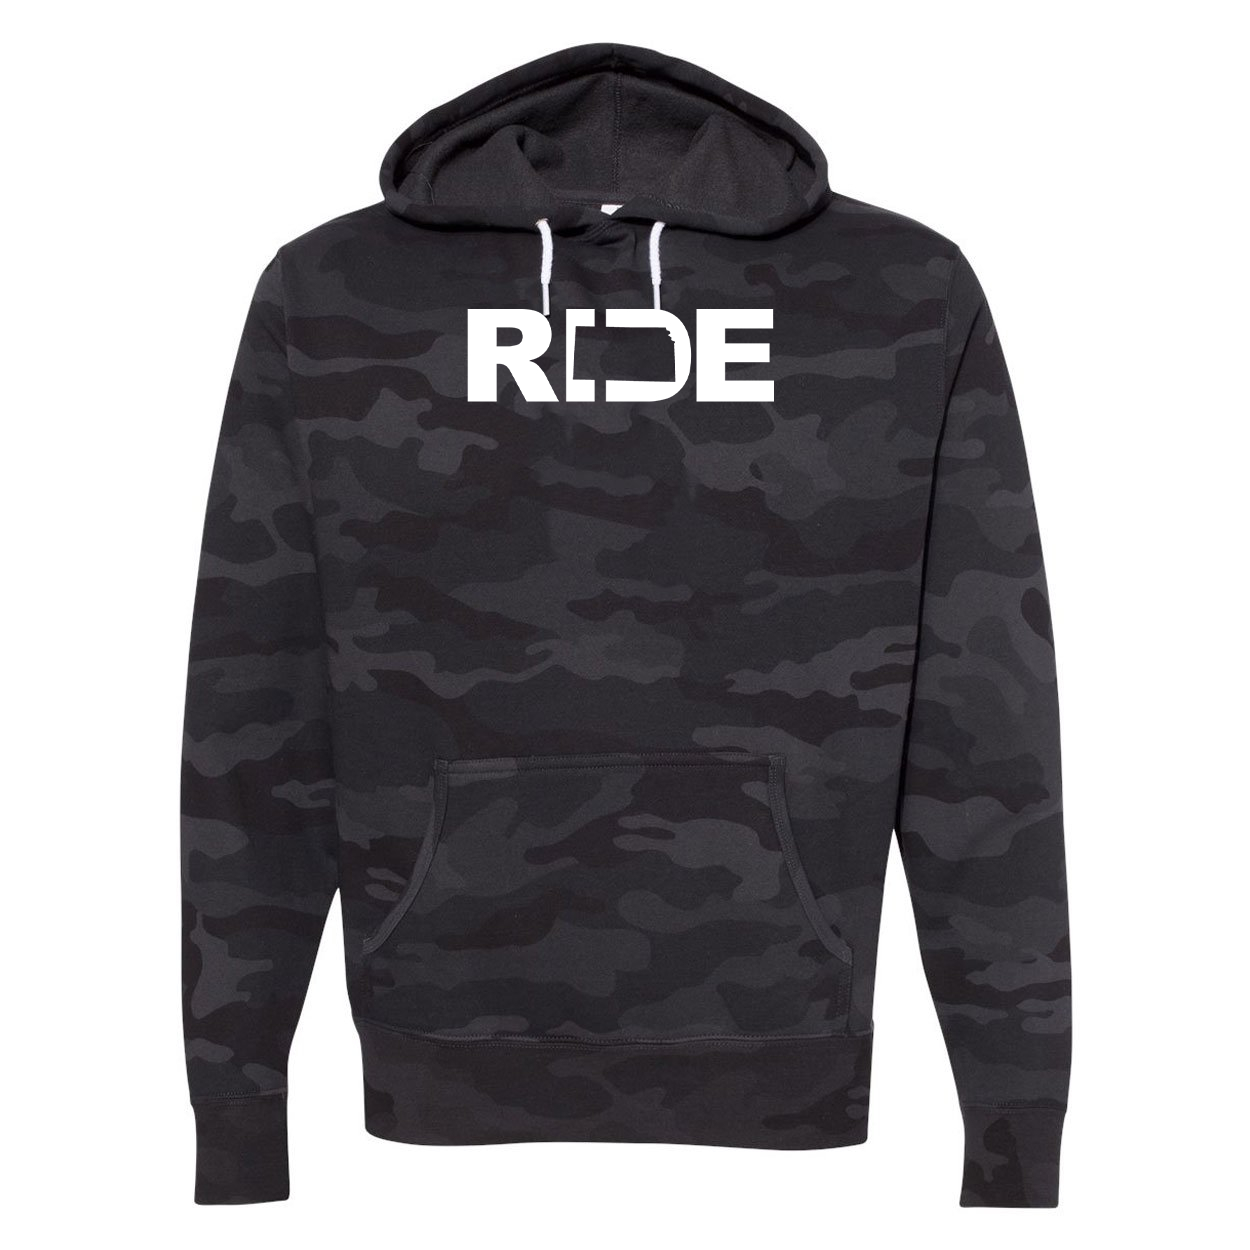 Ride Kansas Classic Unisex Hooded Sweatshirt Black Camo (White Logo)